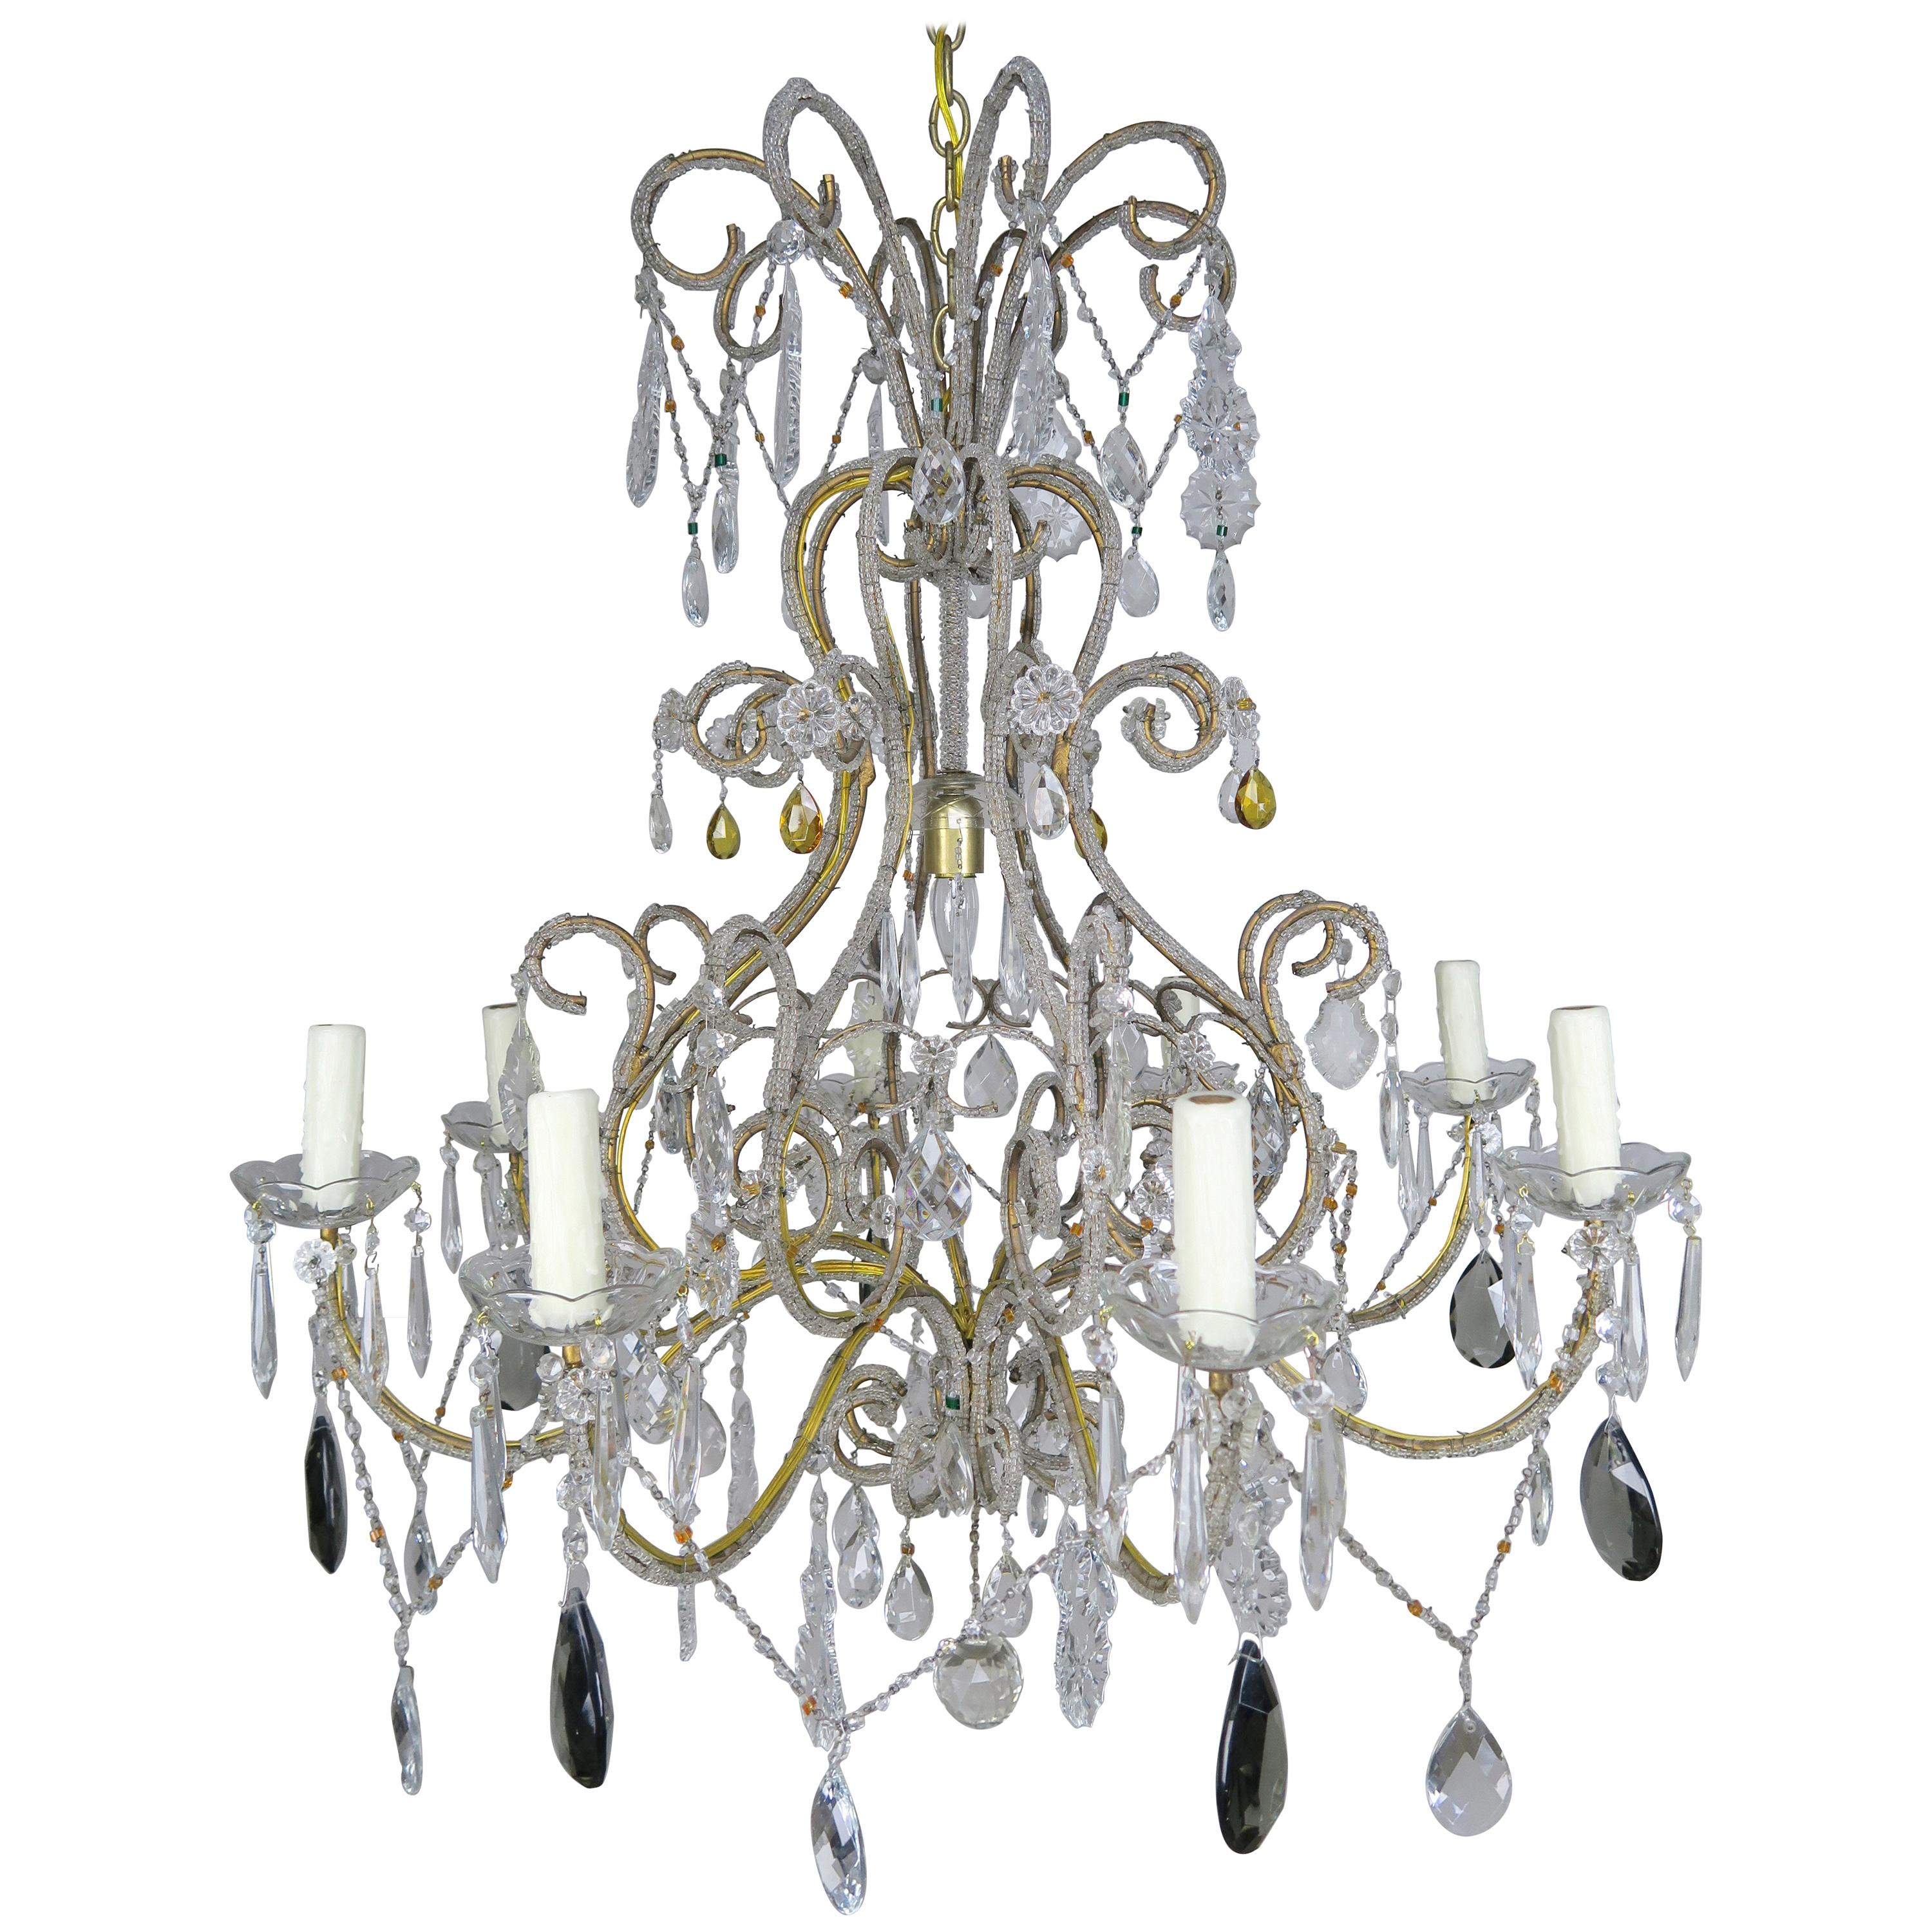 Eight Light Italian Crystal Beaded Chandelier with Smokey Drops